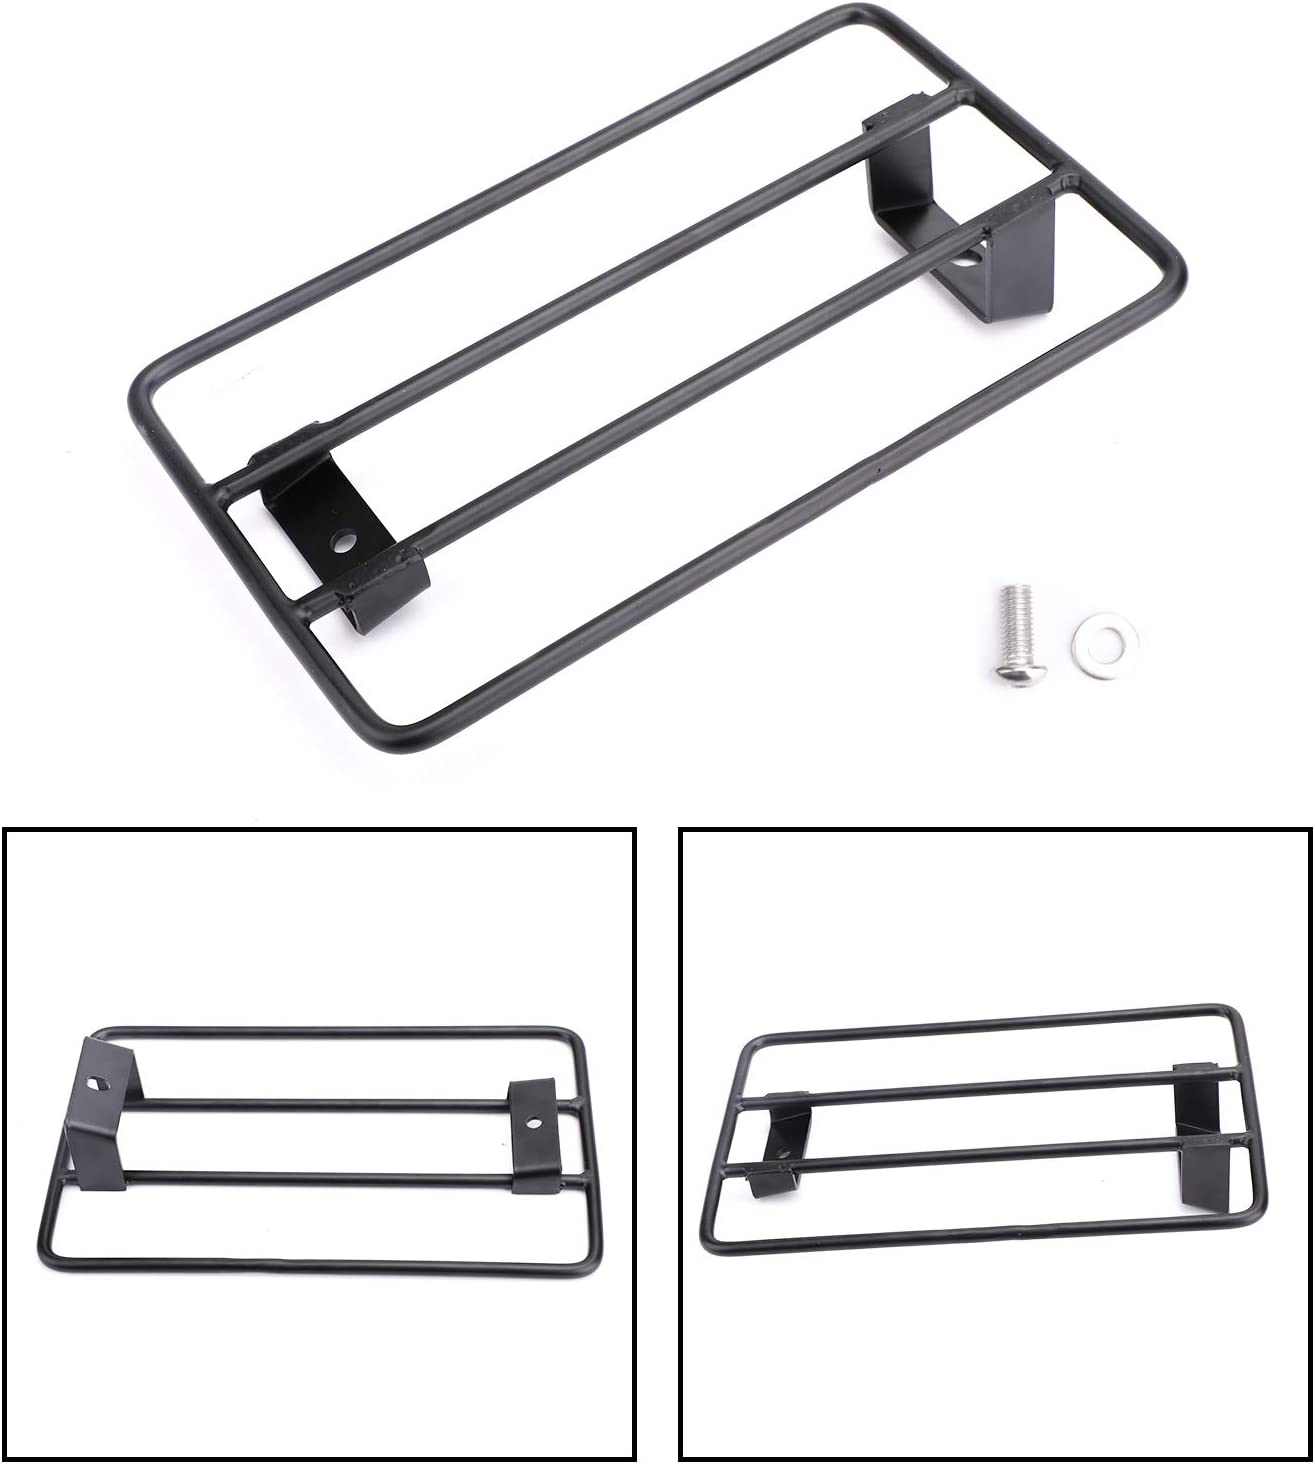 CHENDGE2 Solo Seat Rear Fender Rack Luggage quality assurance Carrier Fit ð All stores are sold for